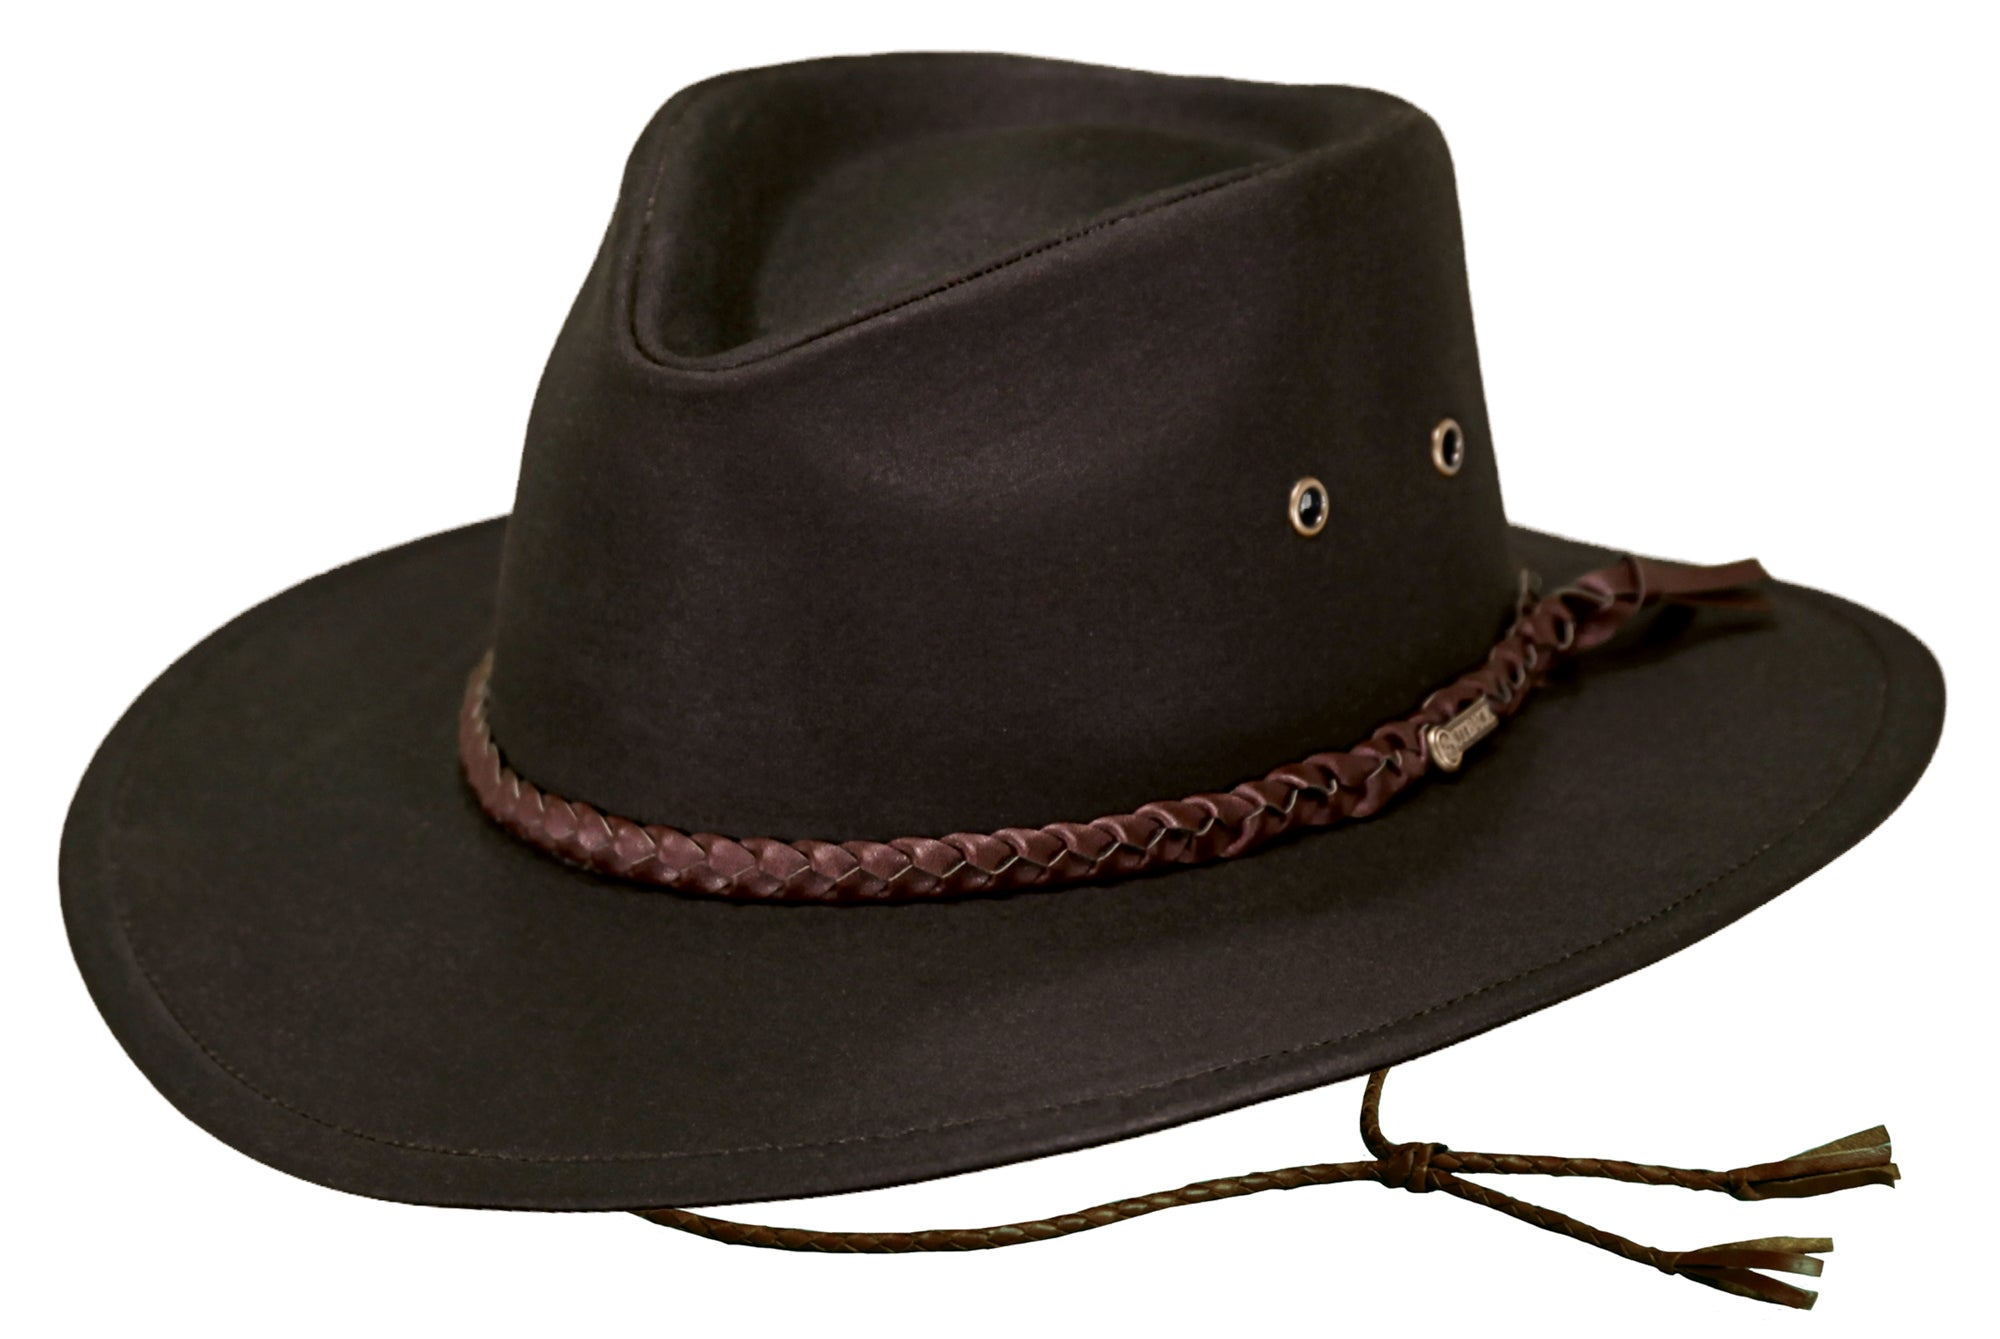 Outback Trading Co. Grizzly Mens Hat Brown 100% Cotton Oilskin ... 6f8600355f7